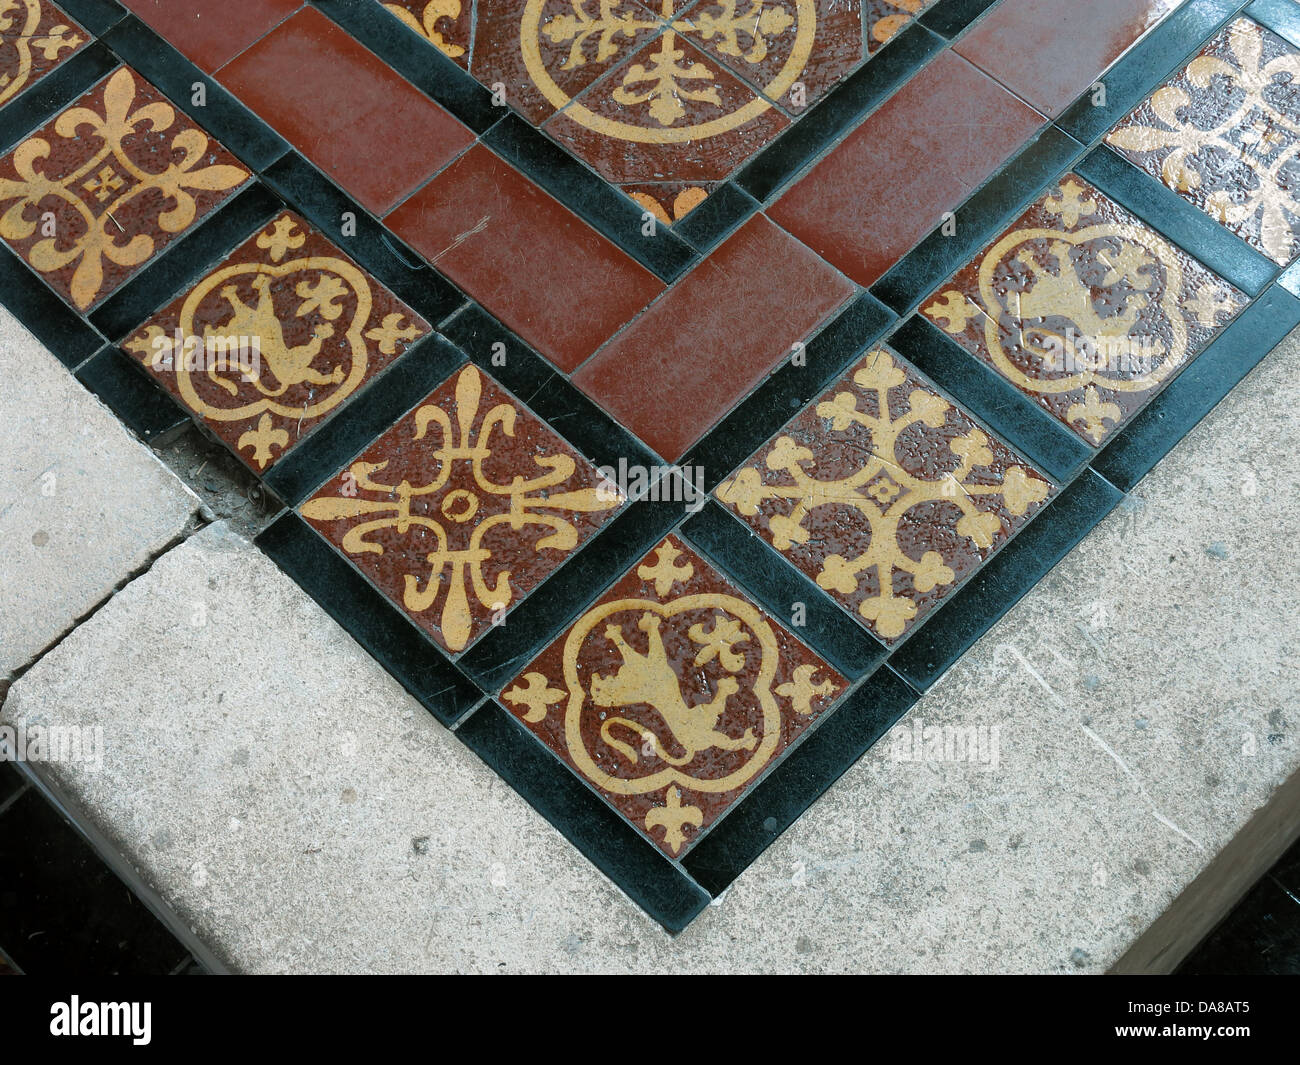 Beautiful Dorchester On Thames Abbey Church of St Peter & St Paul Tile detail - Stock Image